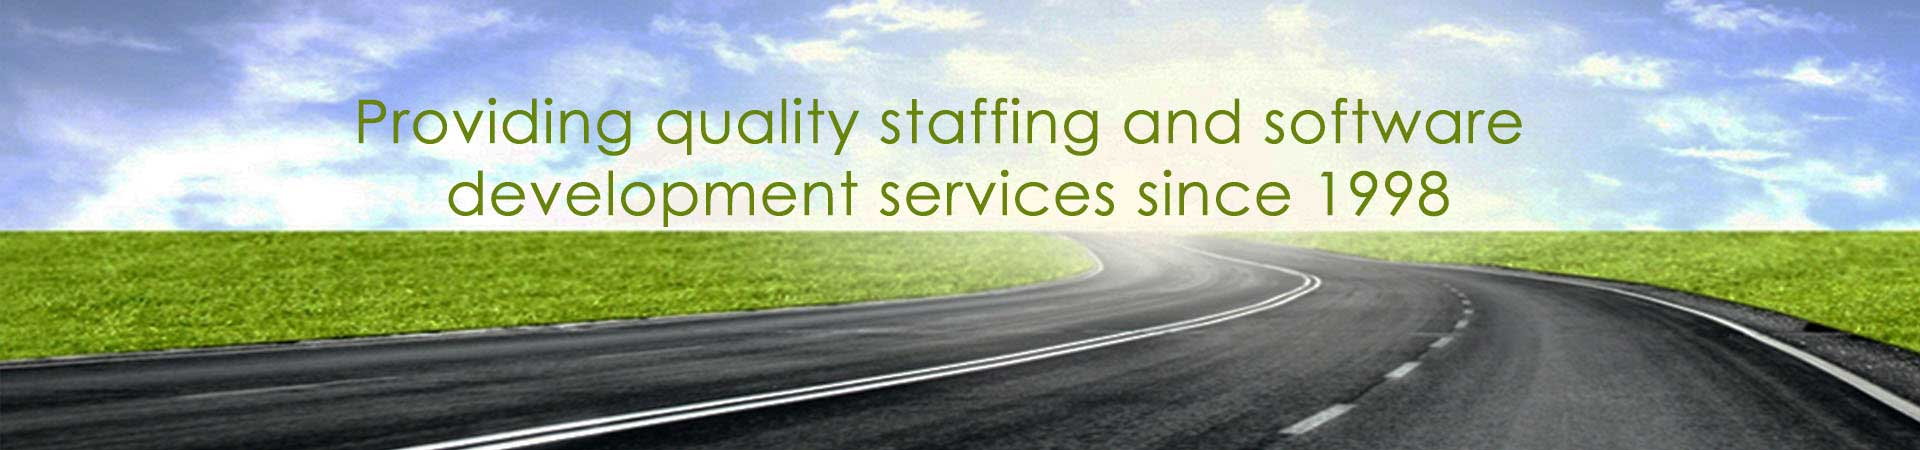 Providing quality staffing and software development service since 1998